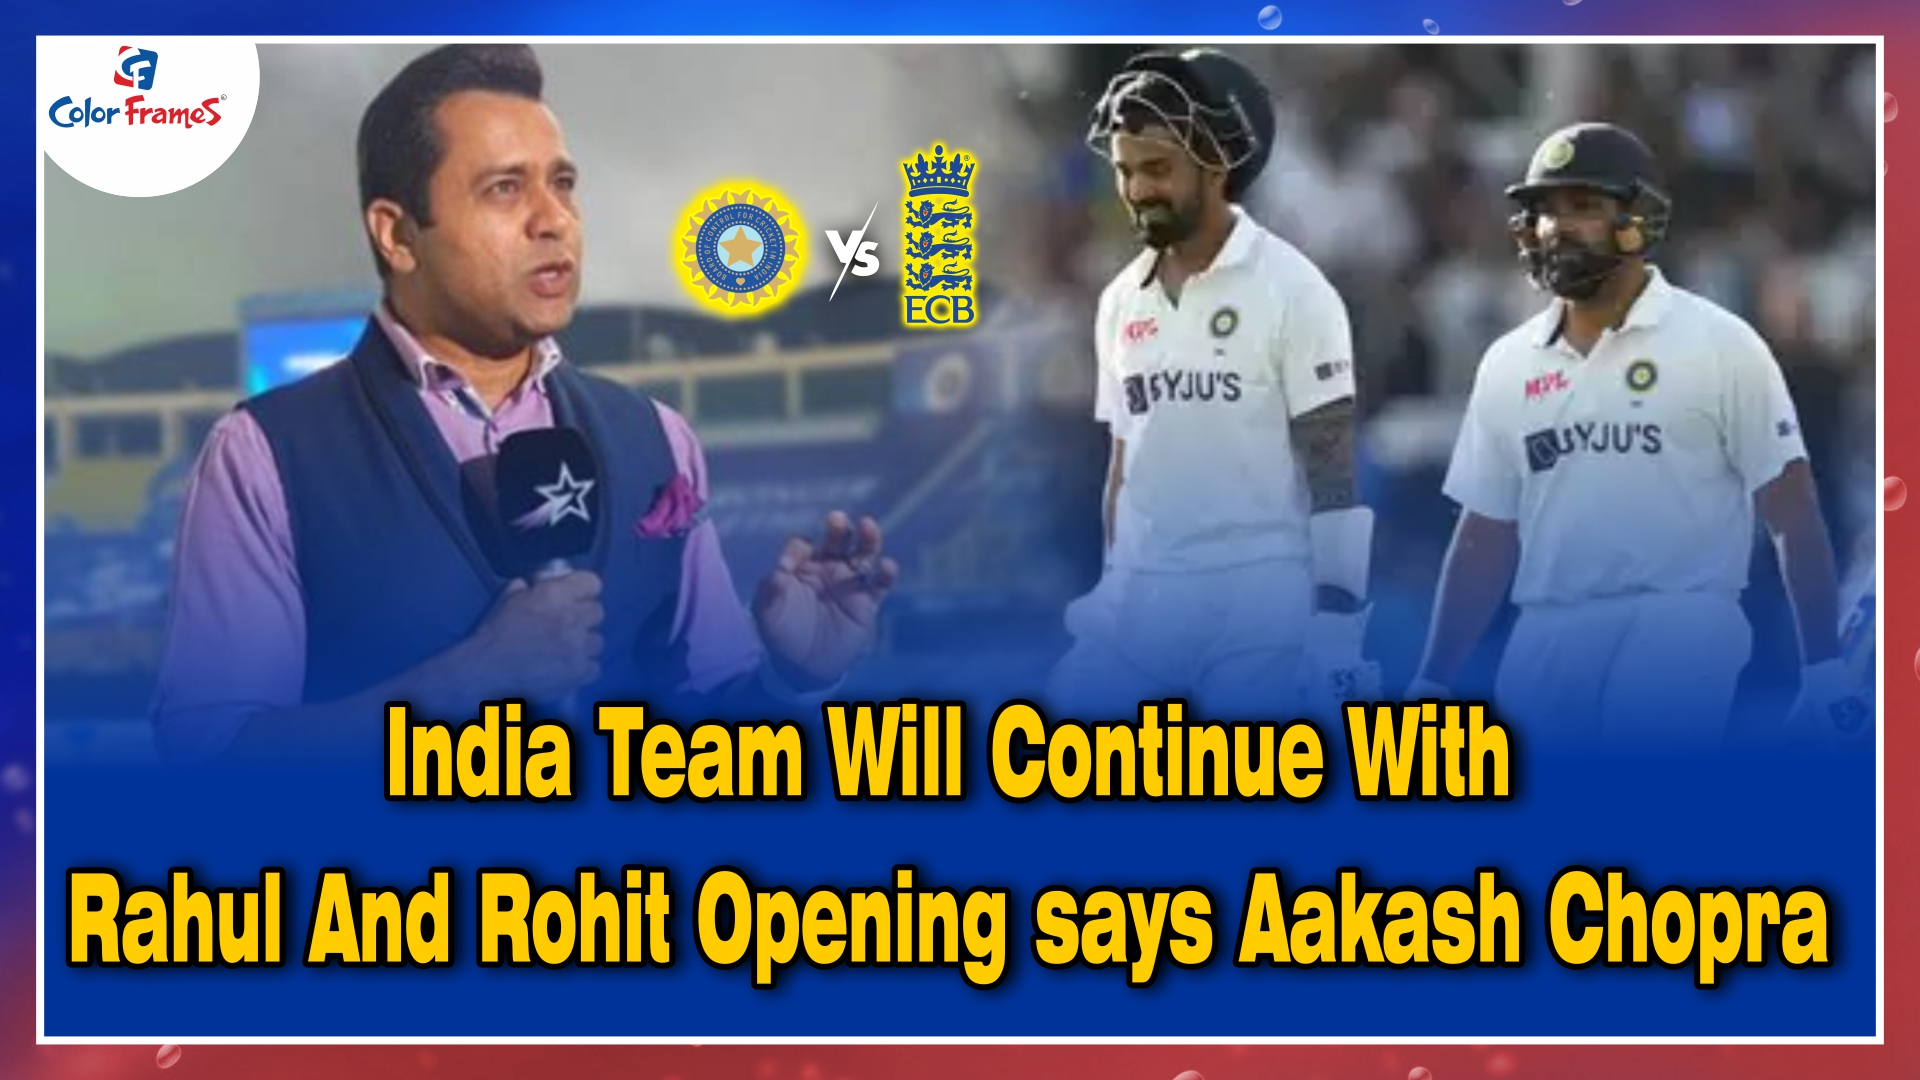 India Team Will Continue With Rahul And Rohit Opening says Aakash Chopra